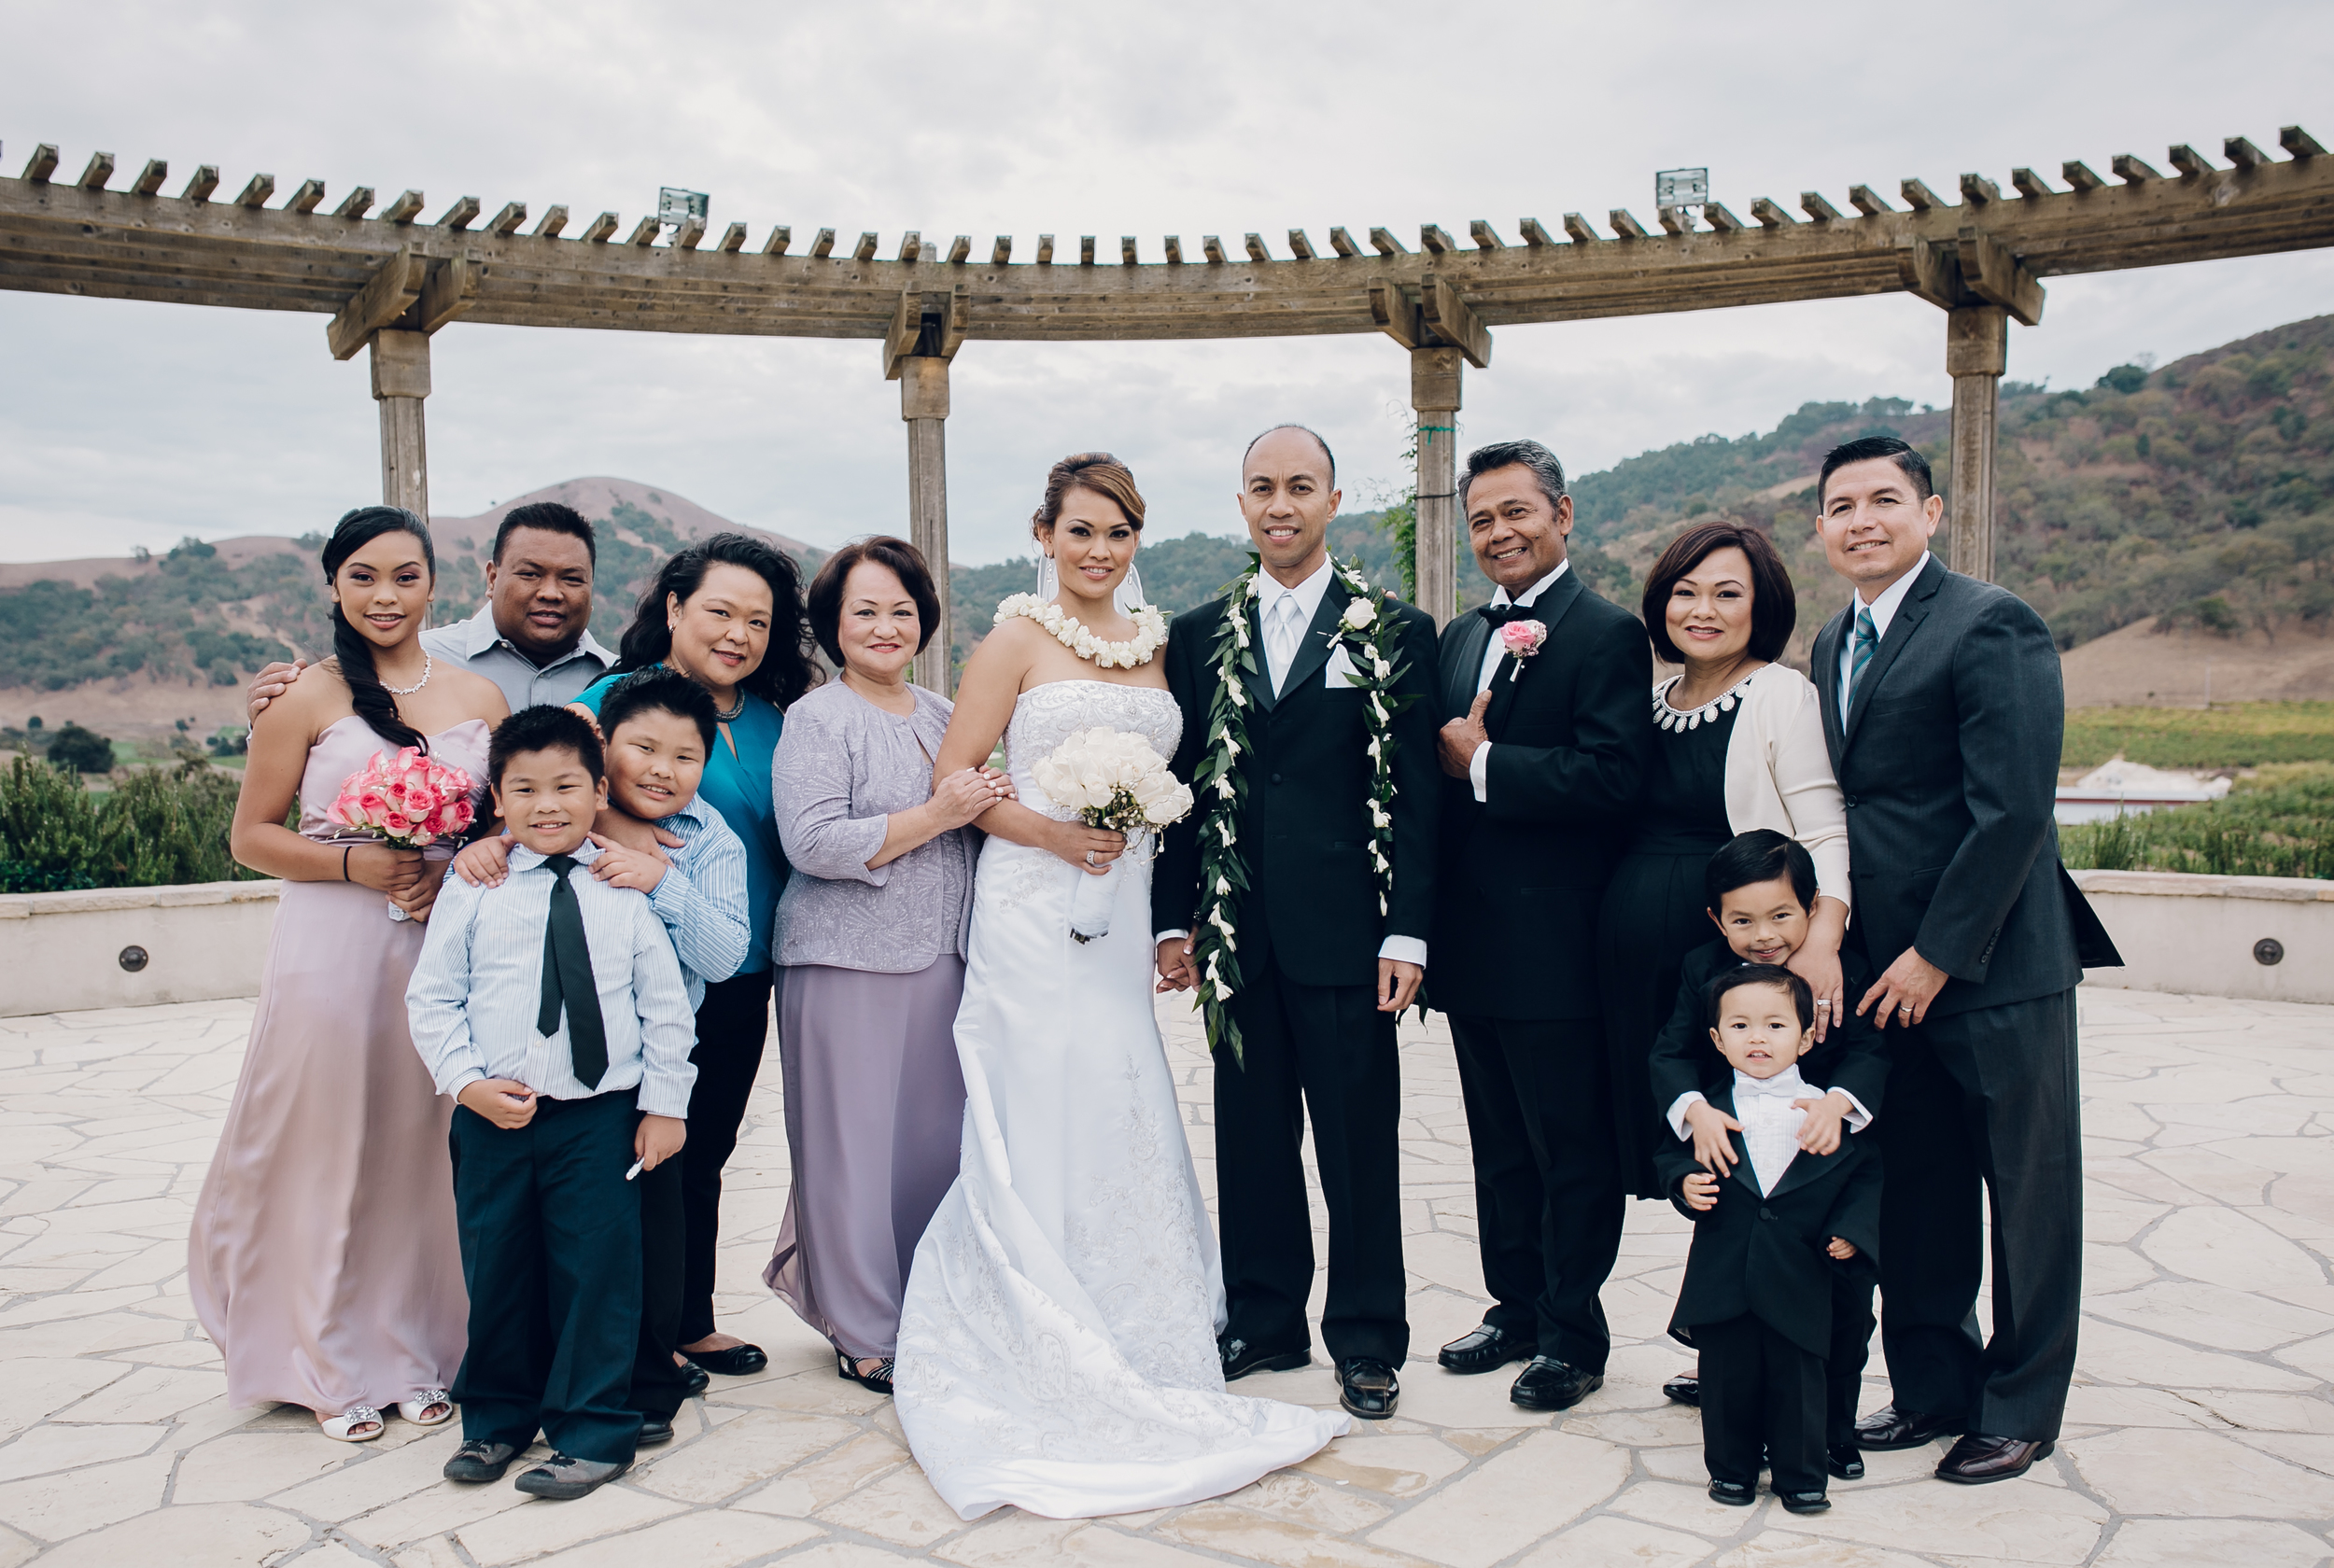 Shiela + Lester's Wedding 9-30-15 787.jpg